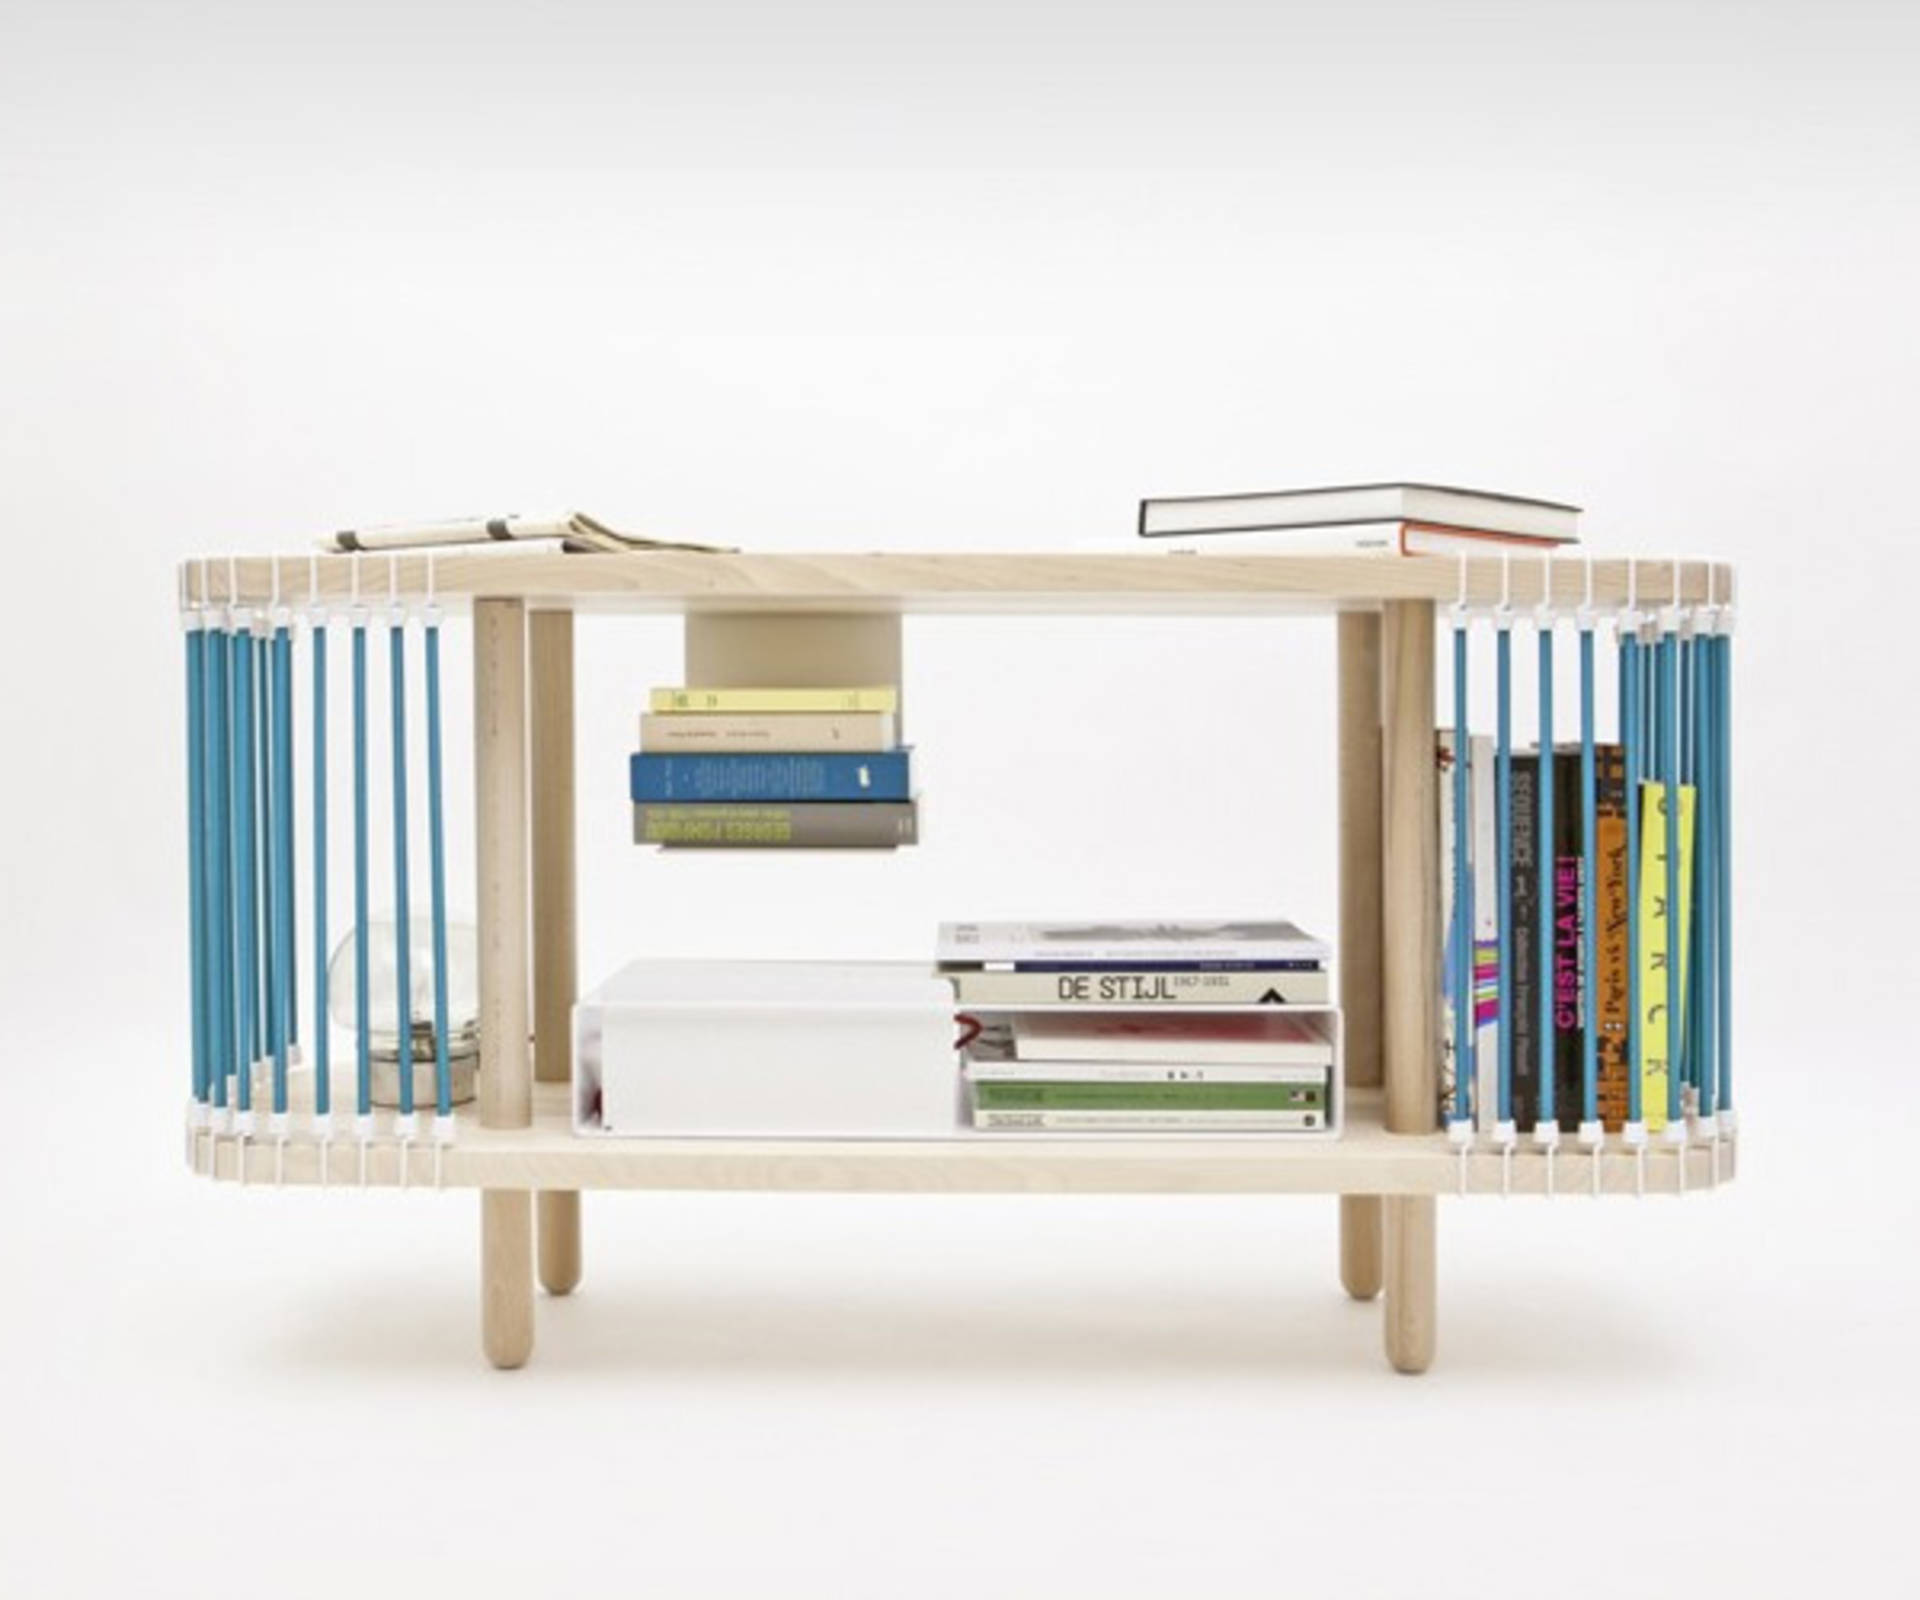 company lifestyle h prodexp w the zoom childrens with bookcases table exp village bookcase sleeper furniture explorer mid desk and bed